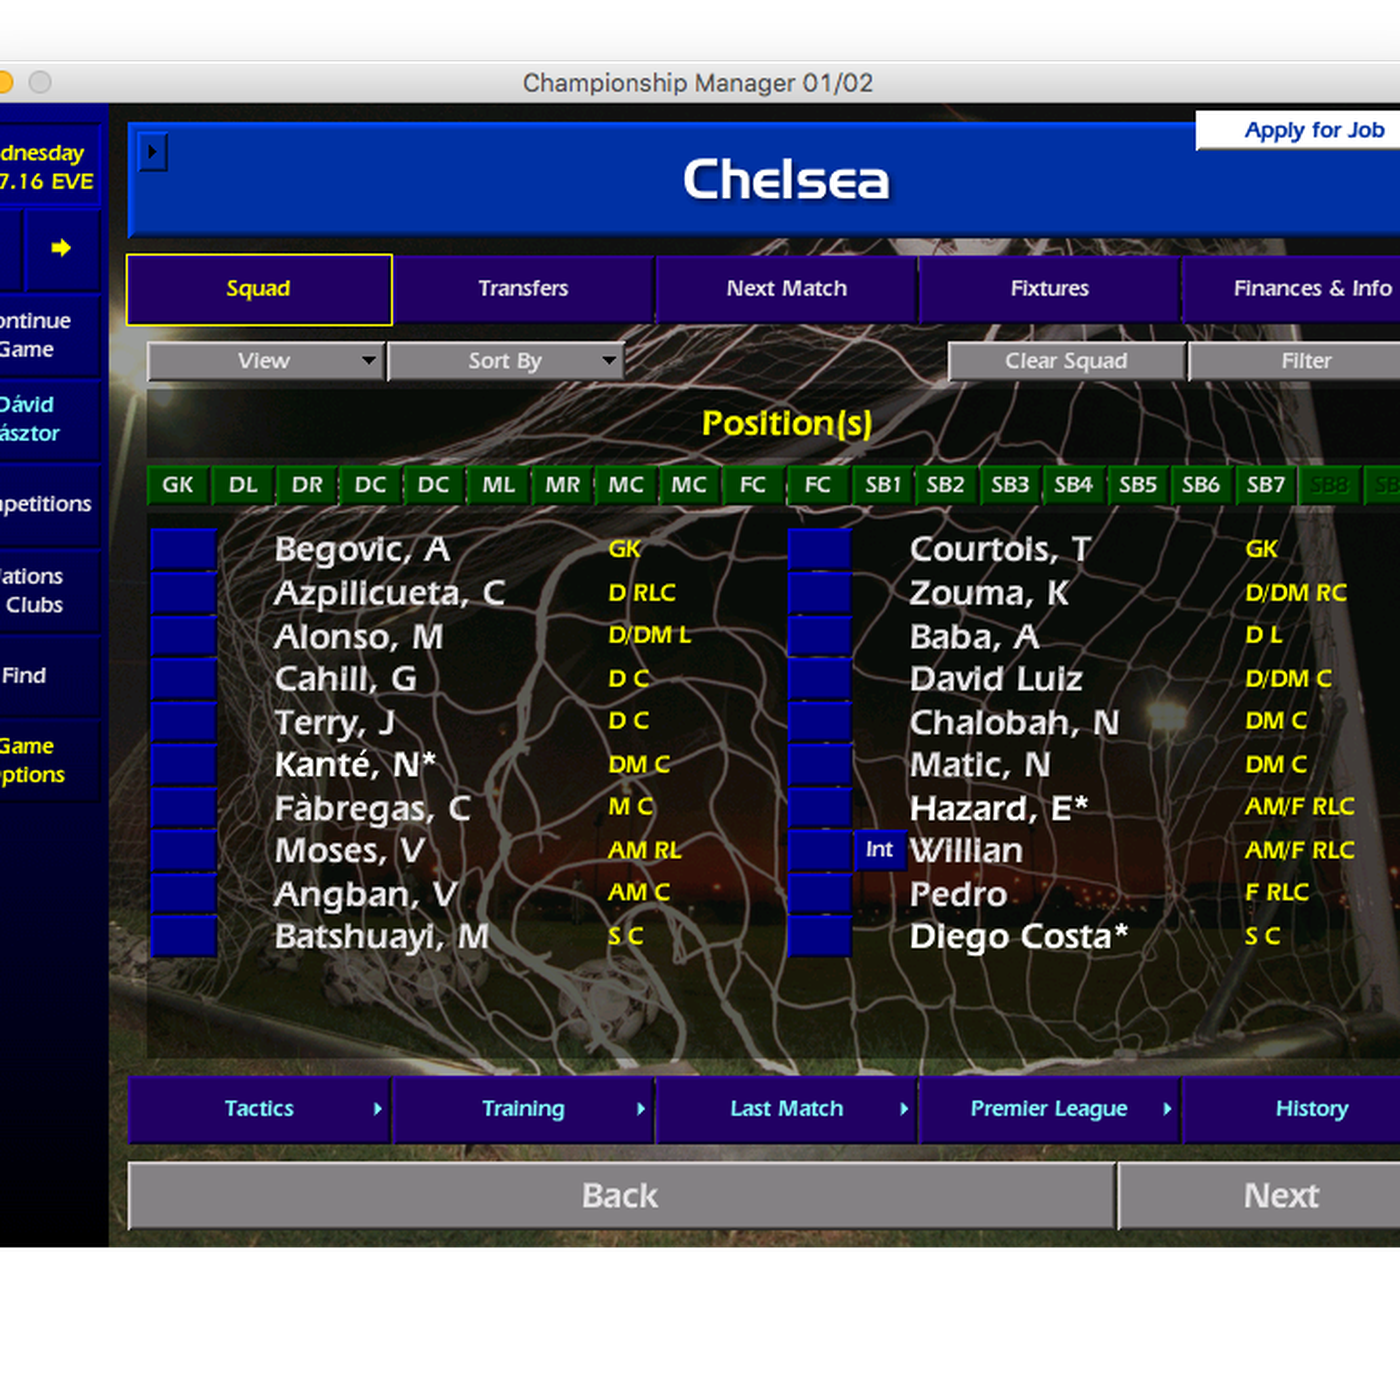 The Daily Hilario: Guide to running Championship Manager 01